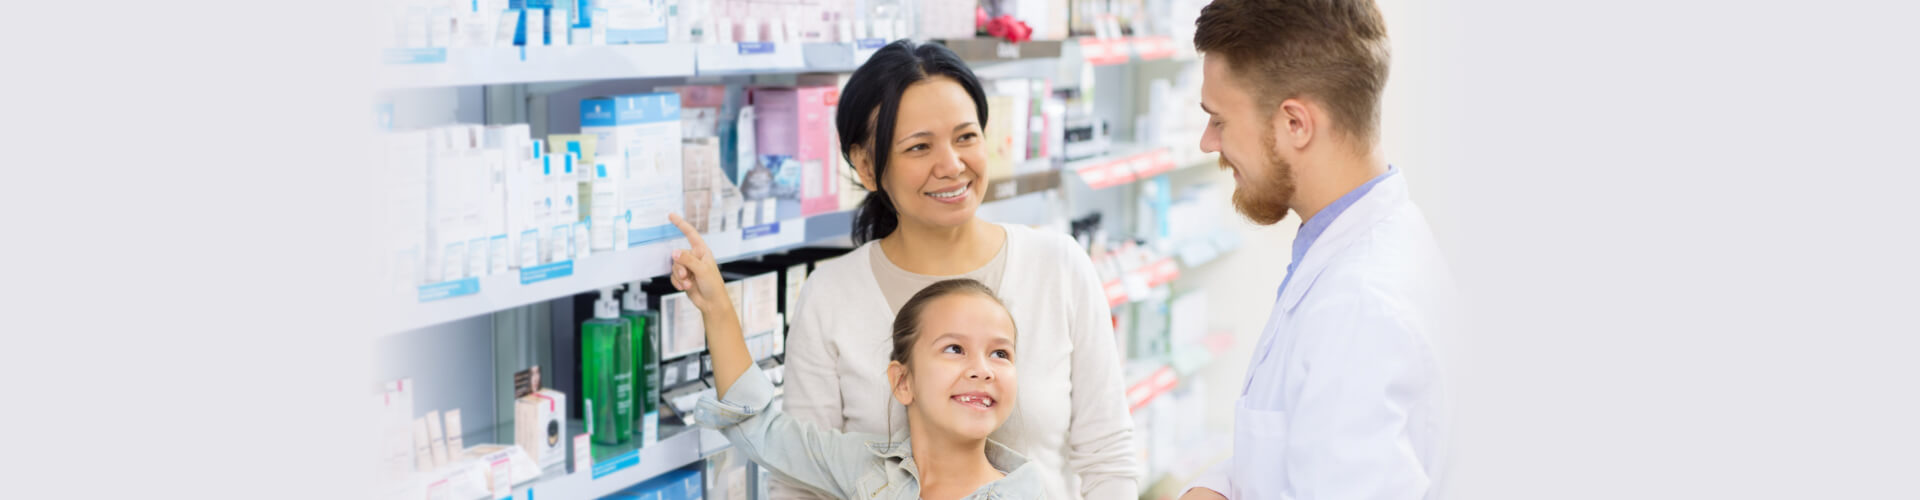 girl pointing to medicine beside mother and pharmacist